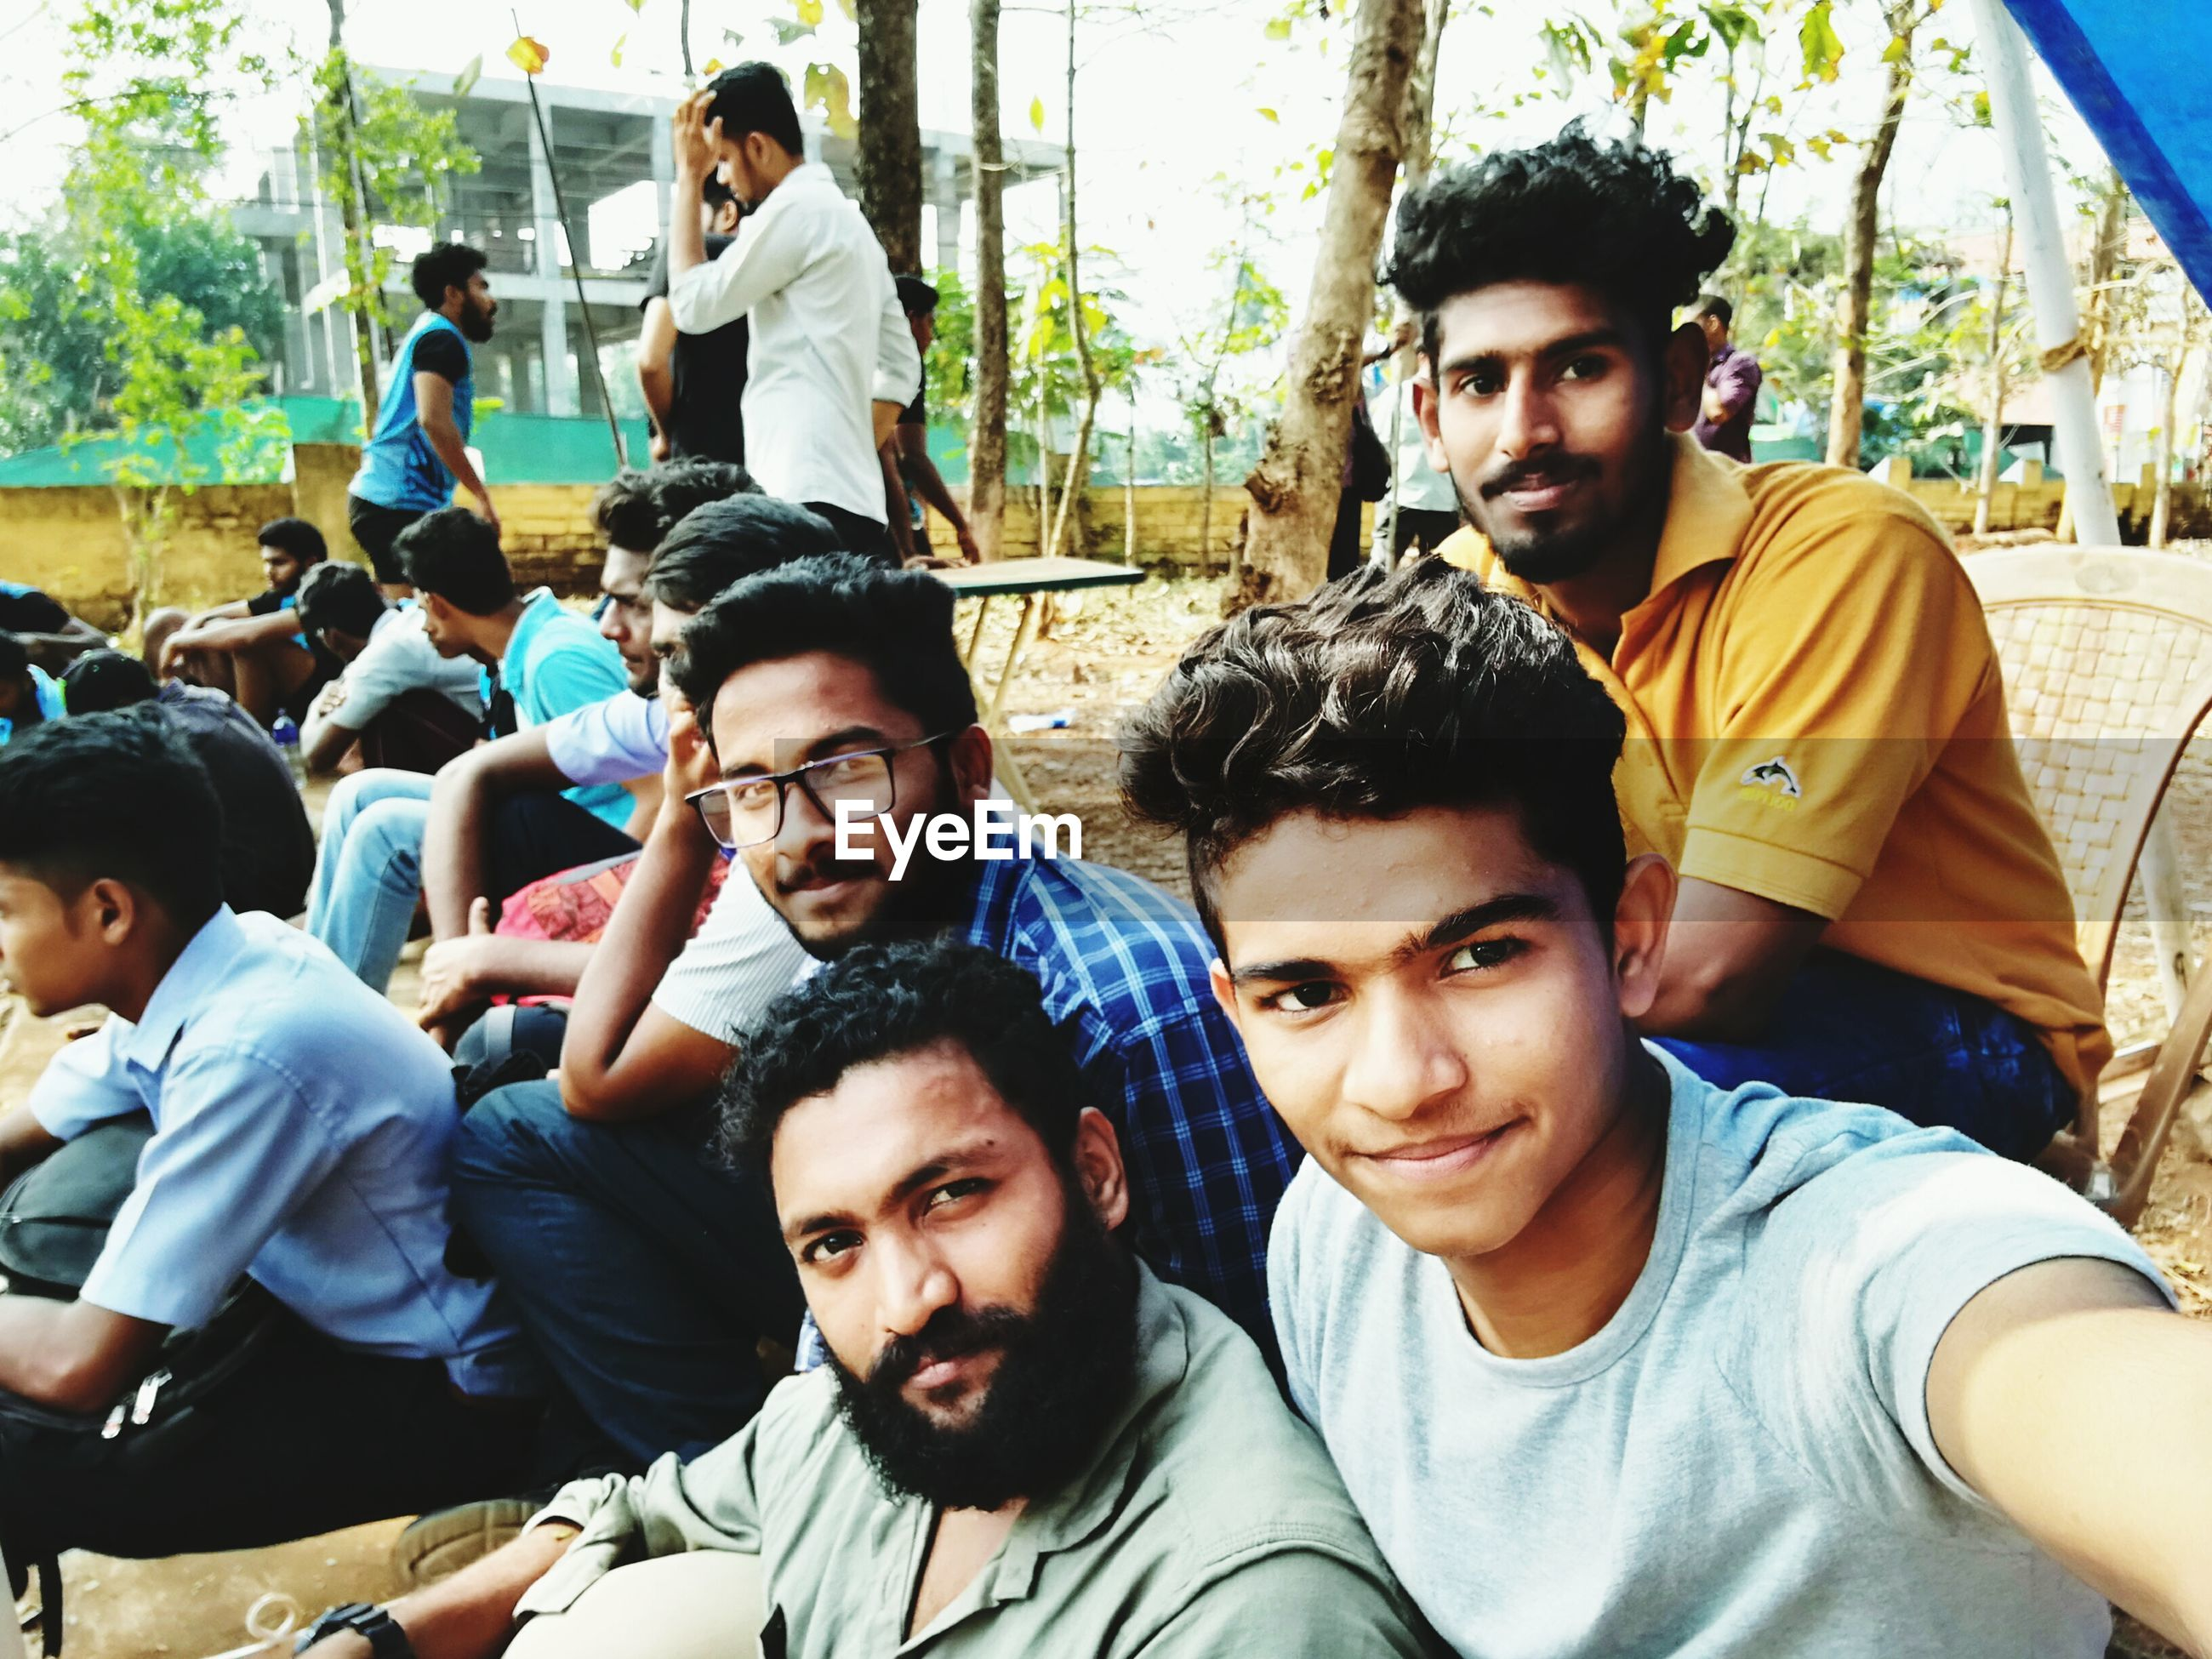 young adult, young men, friendship, young women, togetherness, real people, fun, beard, lifestyles, portrait, adult, people, tree, standing out from the crowd, adults only, men, outdoors, large group of people, human body part, crowd, day